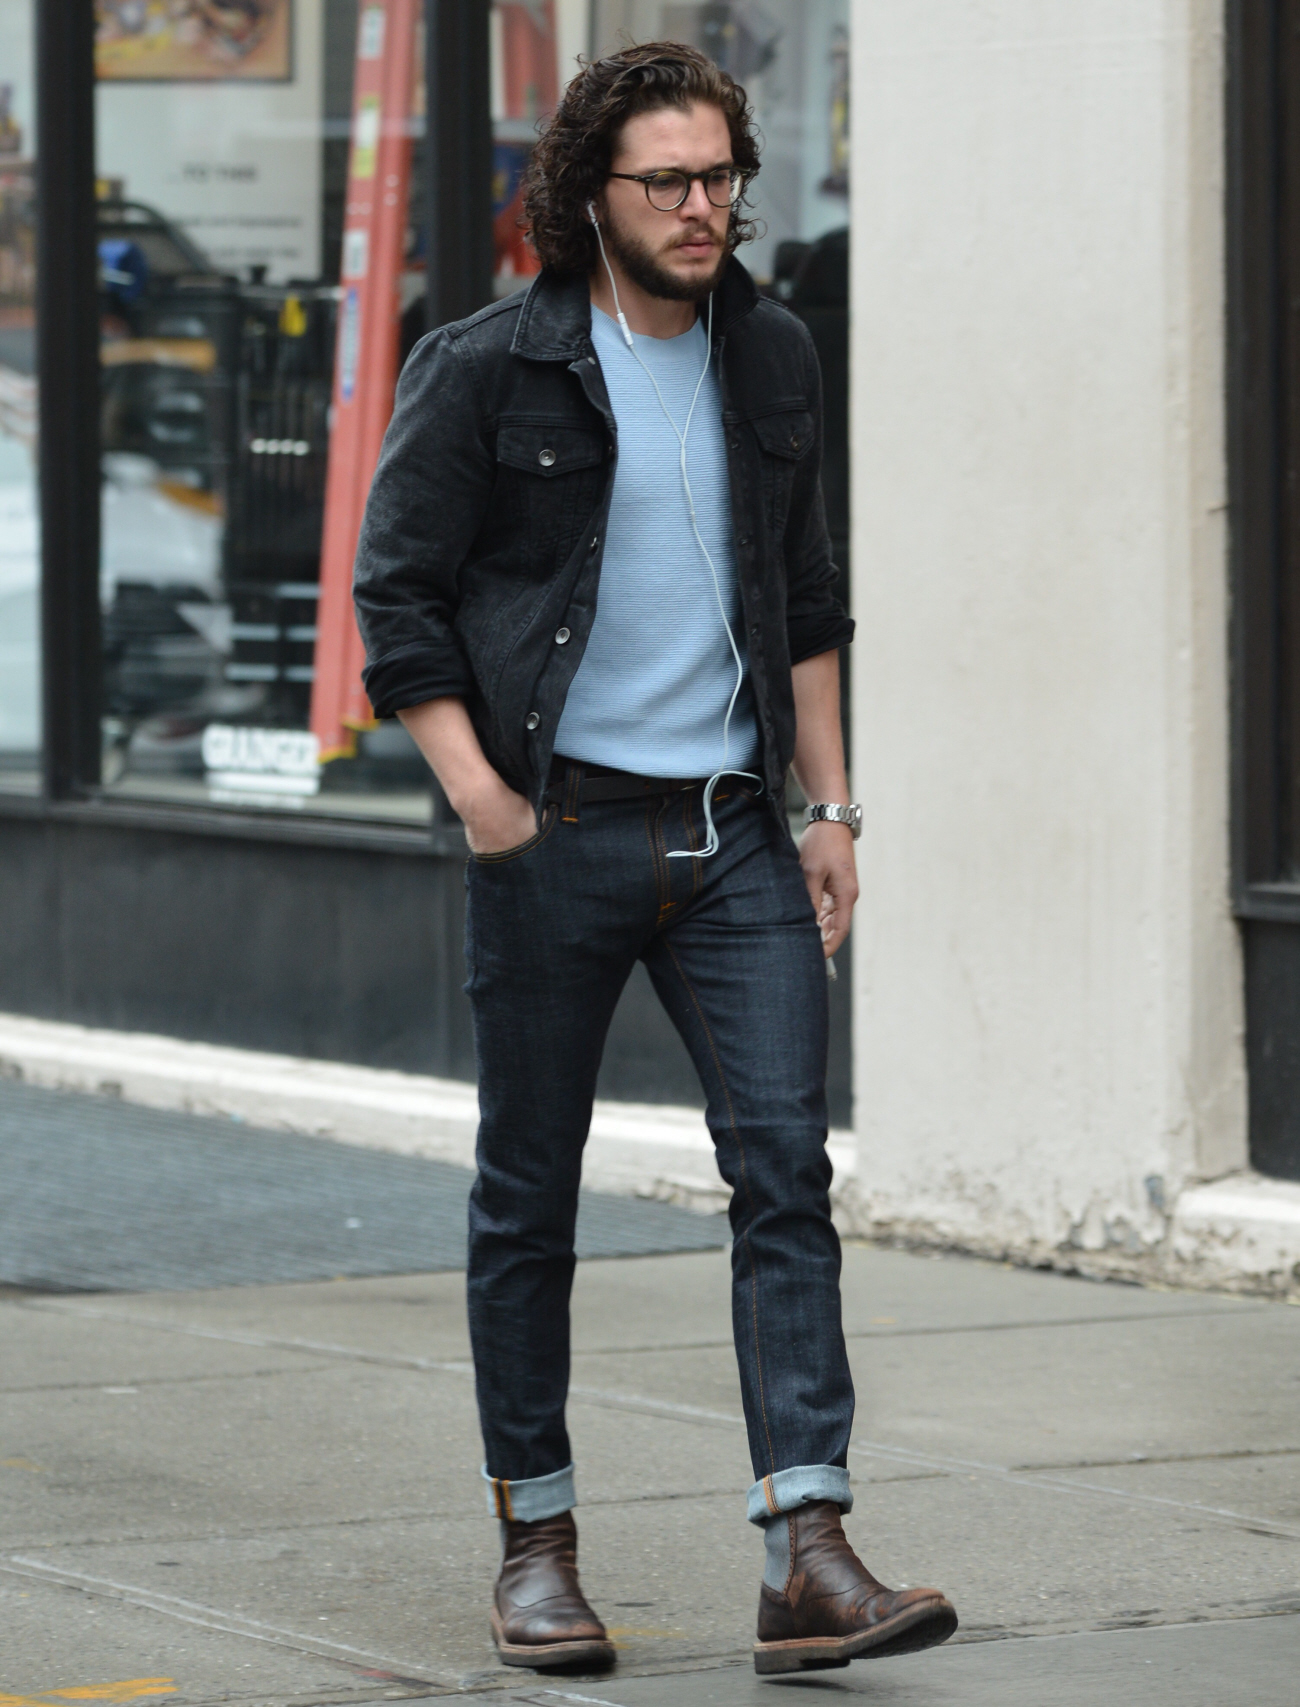 Beautiful  Jeans And Chelsea Boots For New York Lunch Date  Daily Mail Online